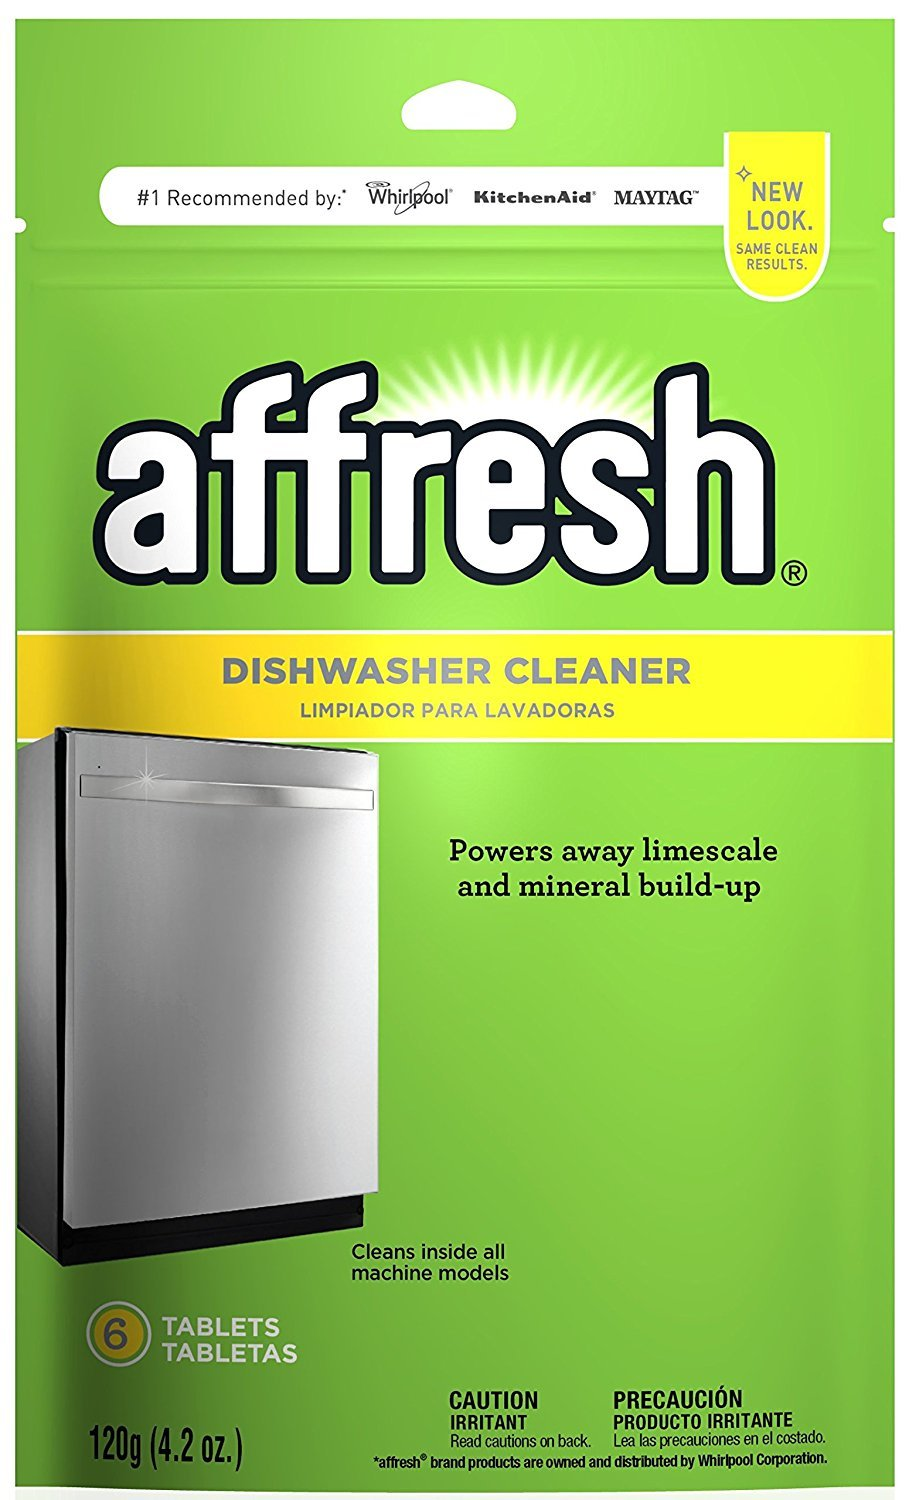 Affresh W10282479 Dishwasher Cleaner, 6 Tablets - Pack of 3 by Affresh (Image #1)